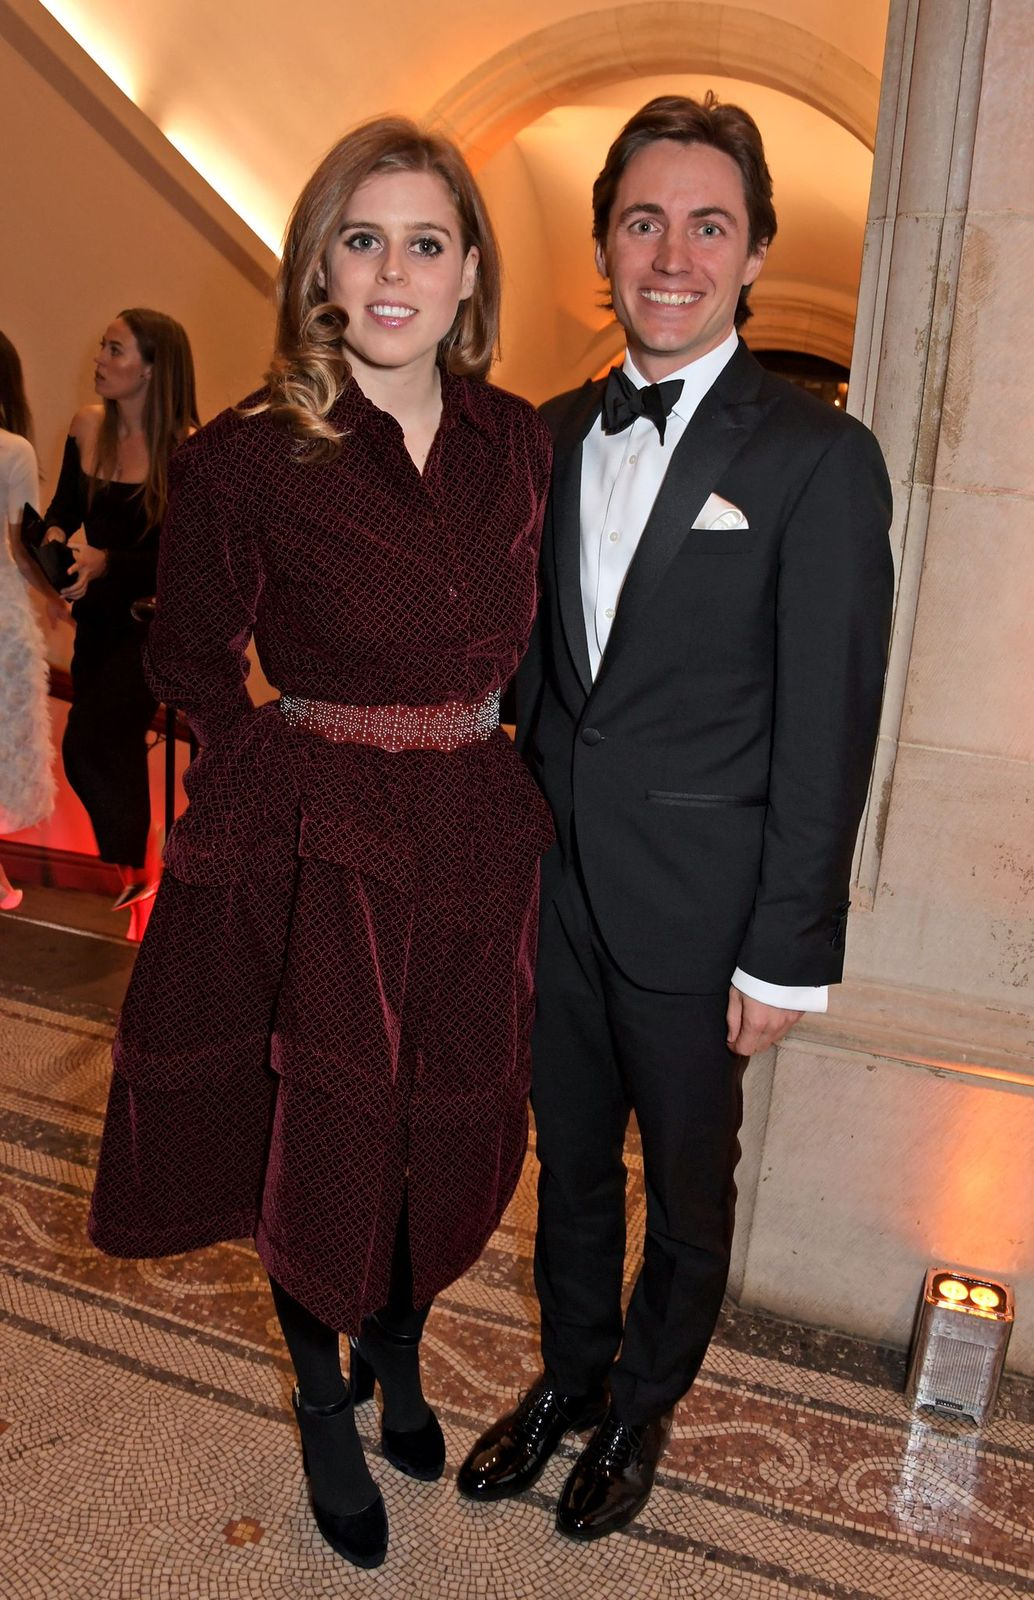 Princess Beatrice and Edoardo Mapelli Mozzi at The Portrait Gala held at the National Portrait Gallery on March 12, 2019, in London, England   Photo: Getty Images